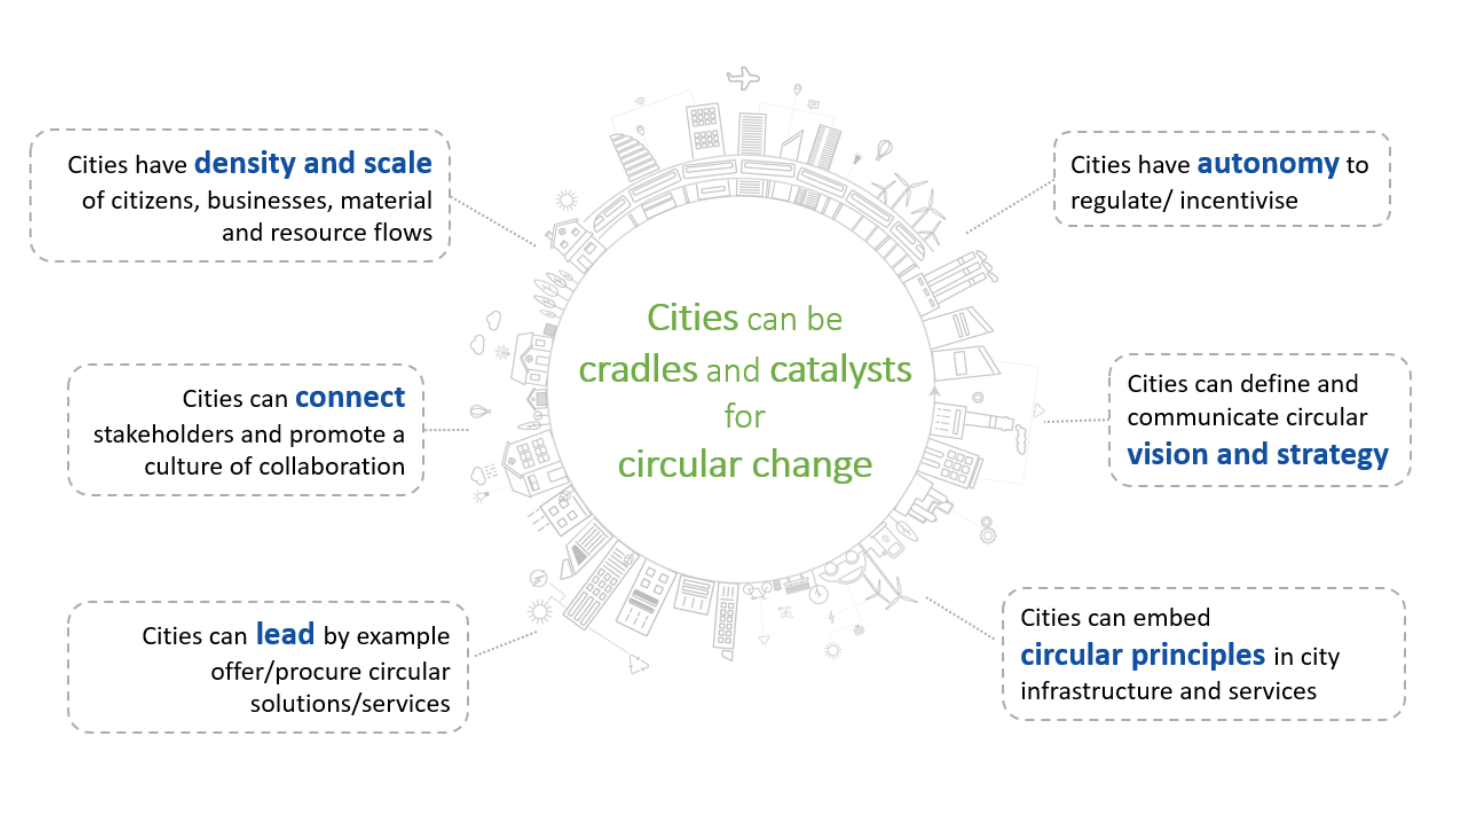 City as catalyst for circular change